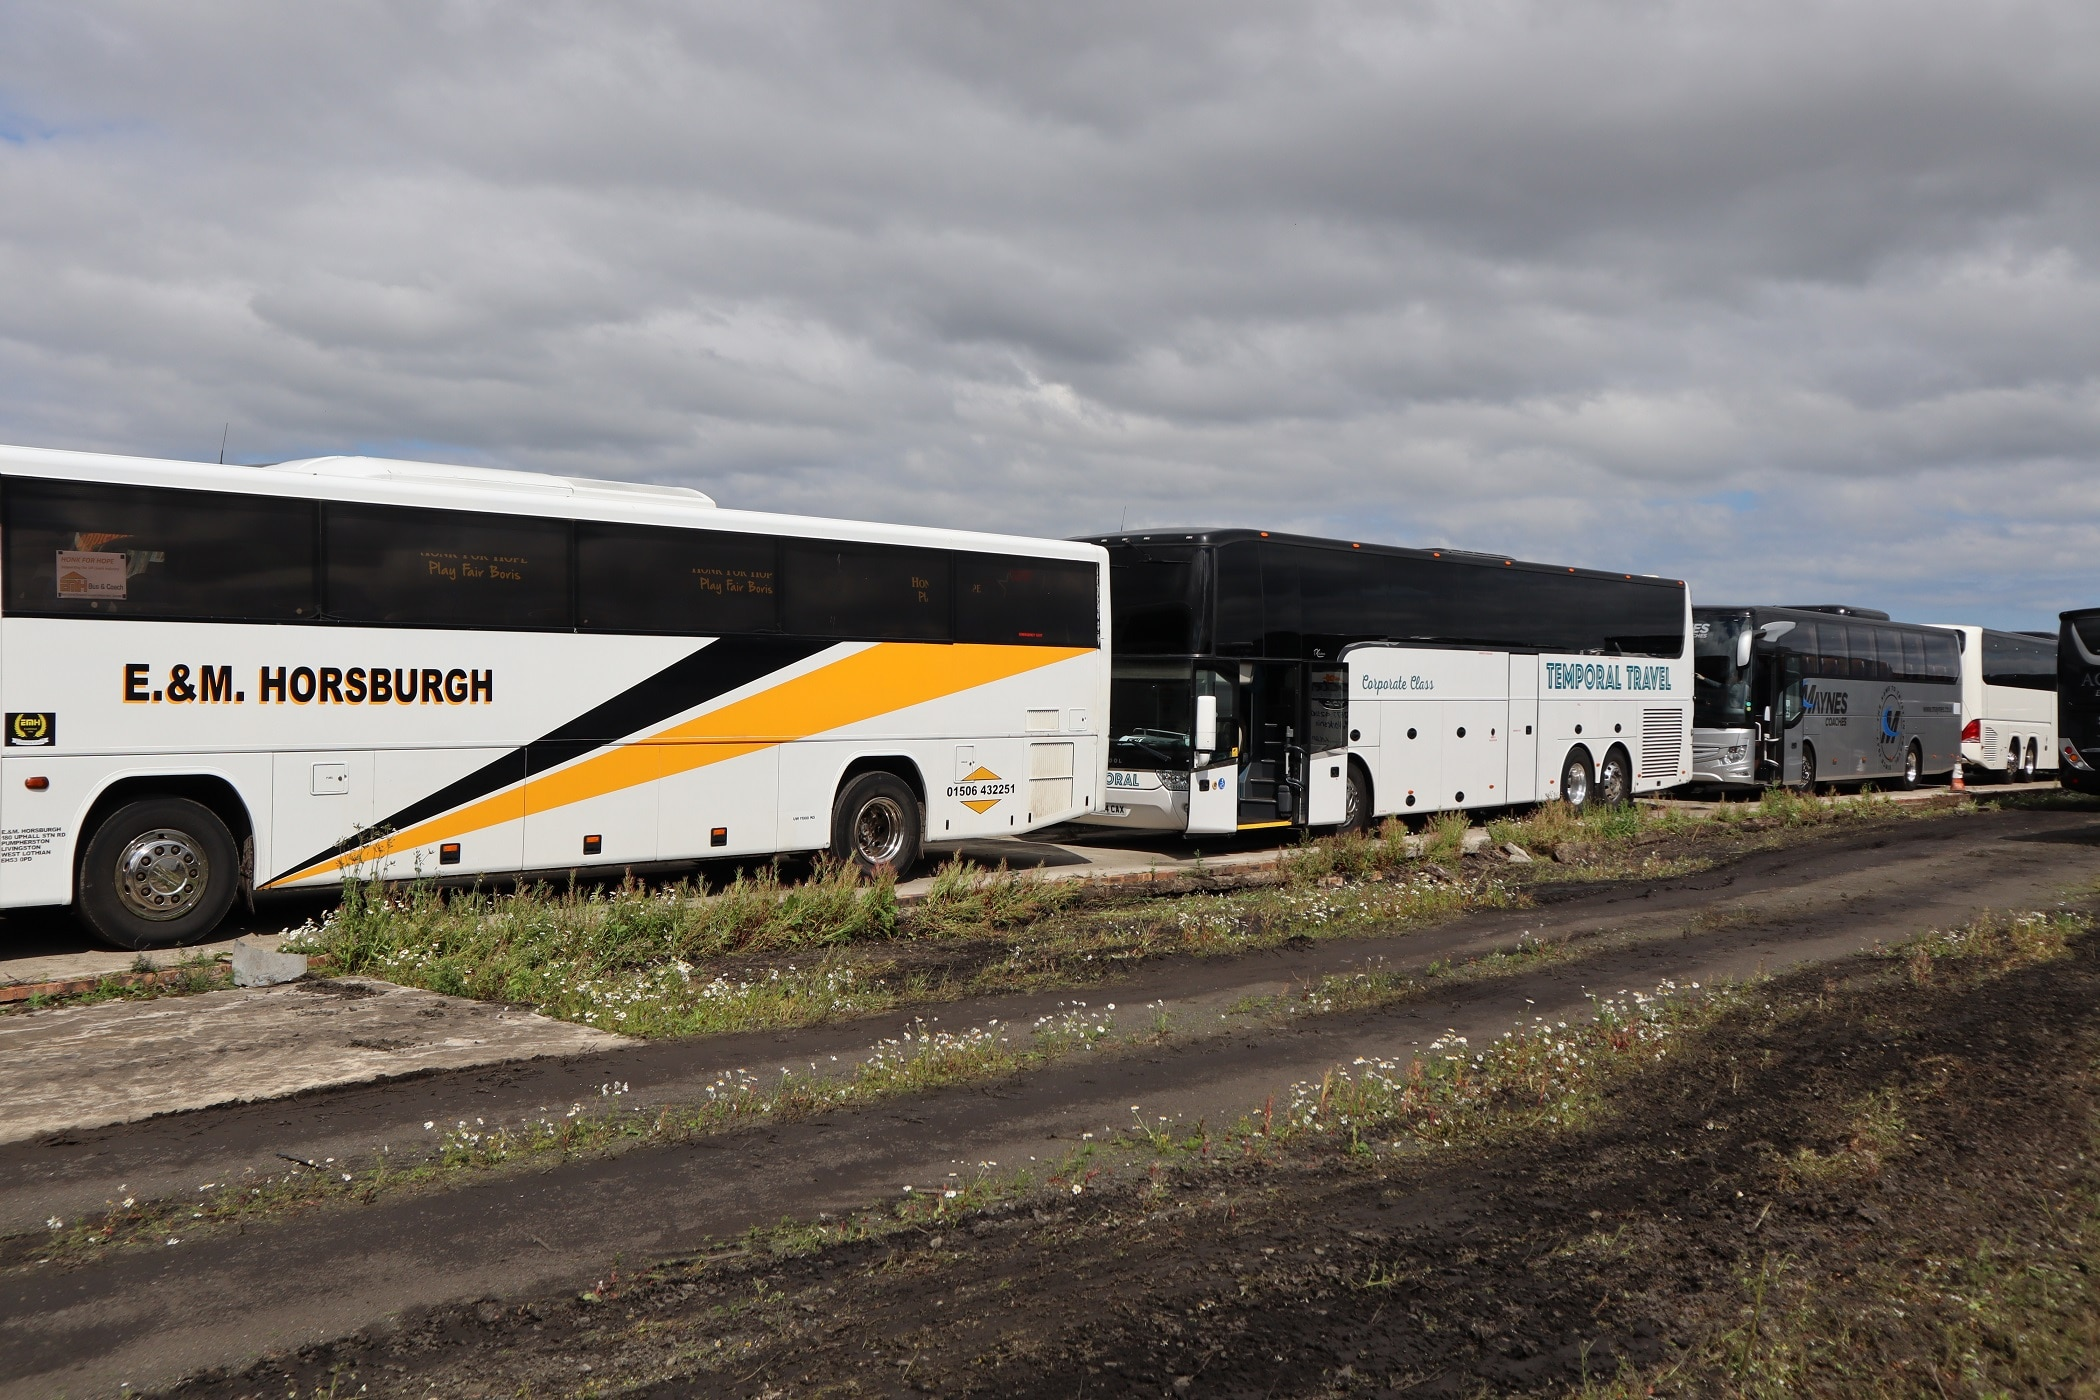 Coach Operators Fund in Scotland set for launch in February 2021